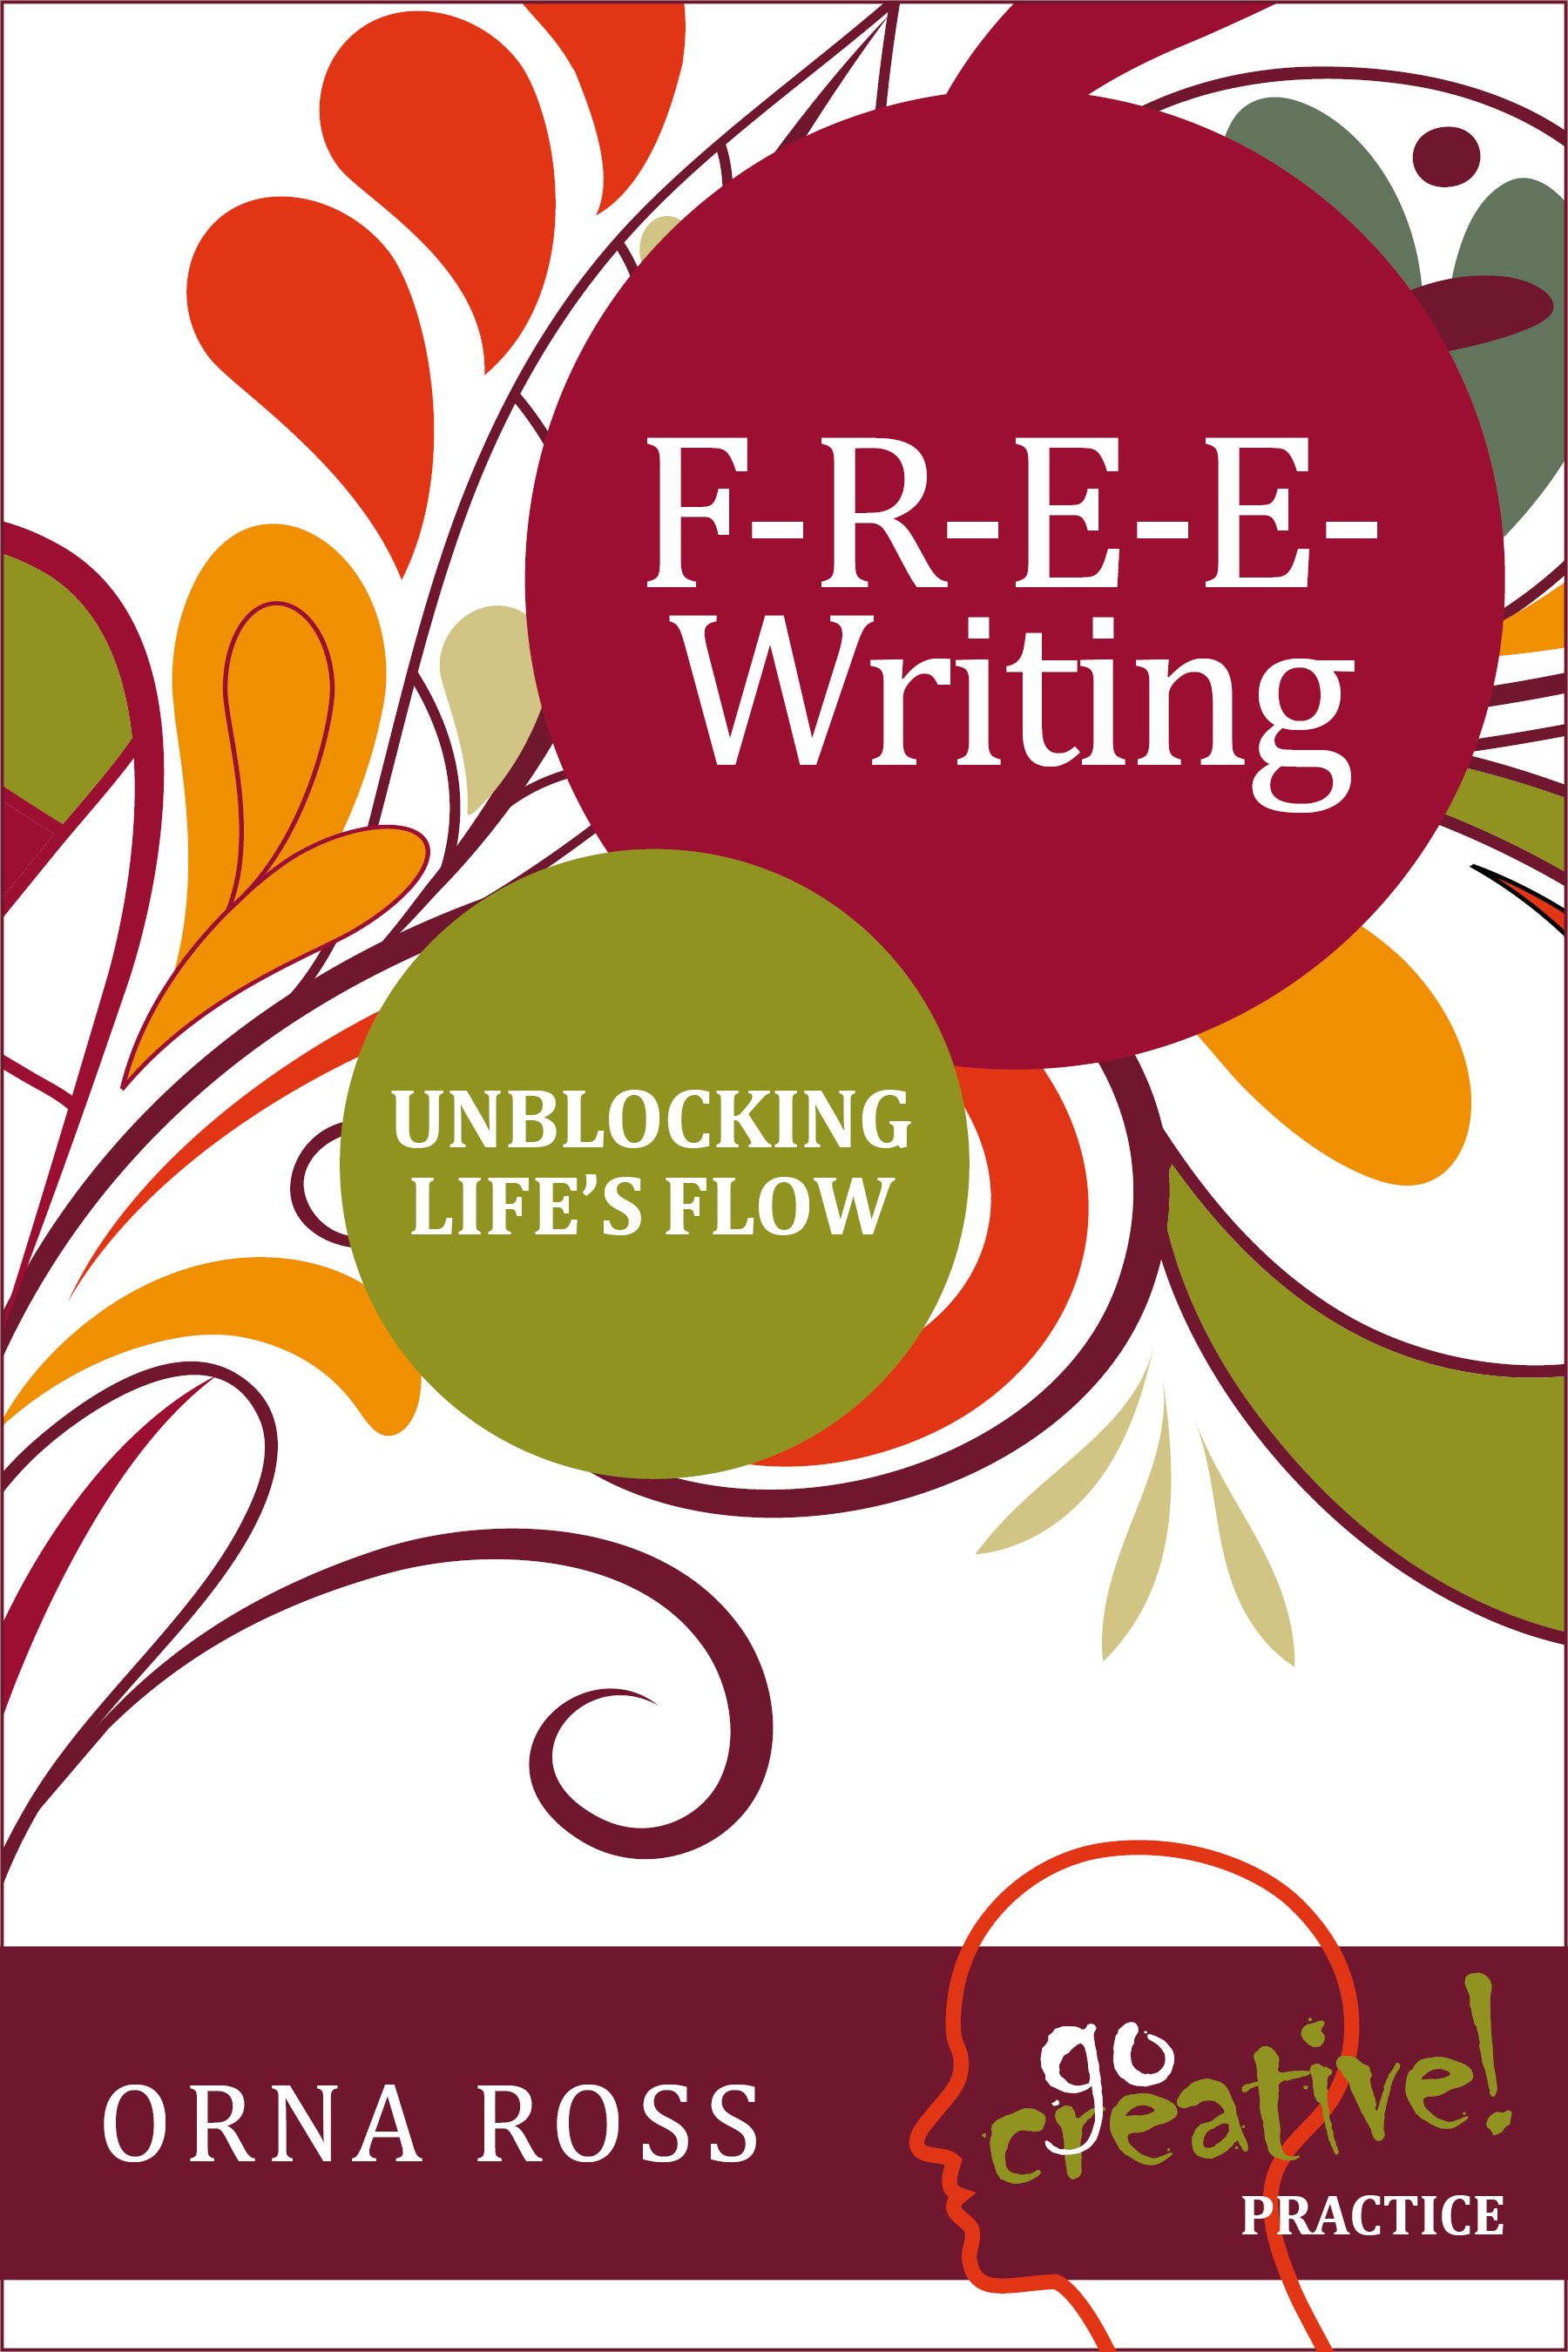 Freewriting Creative tool